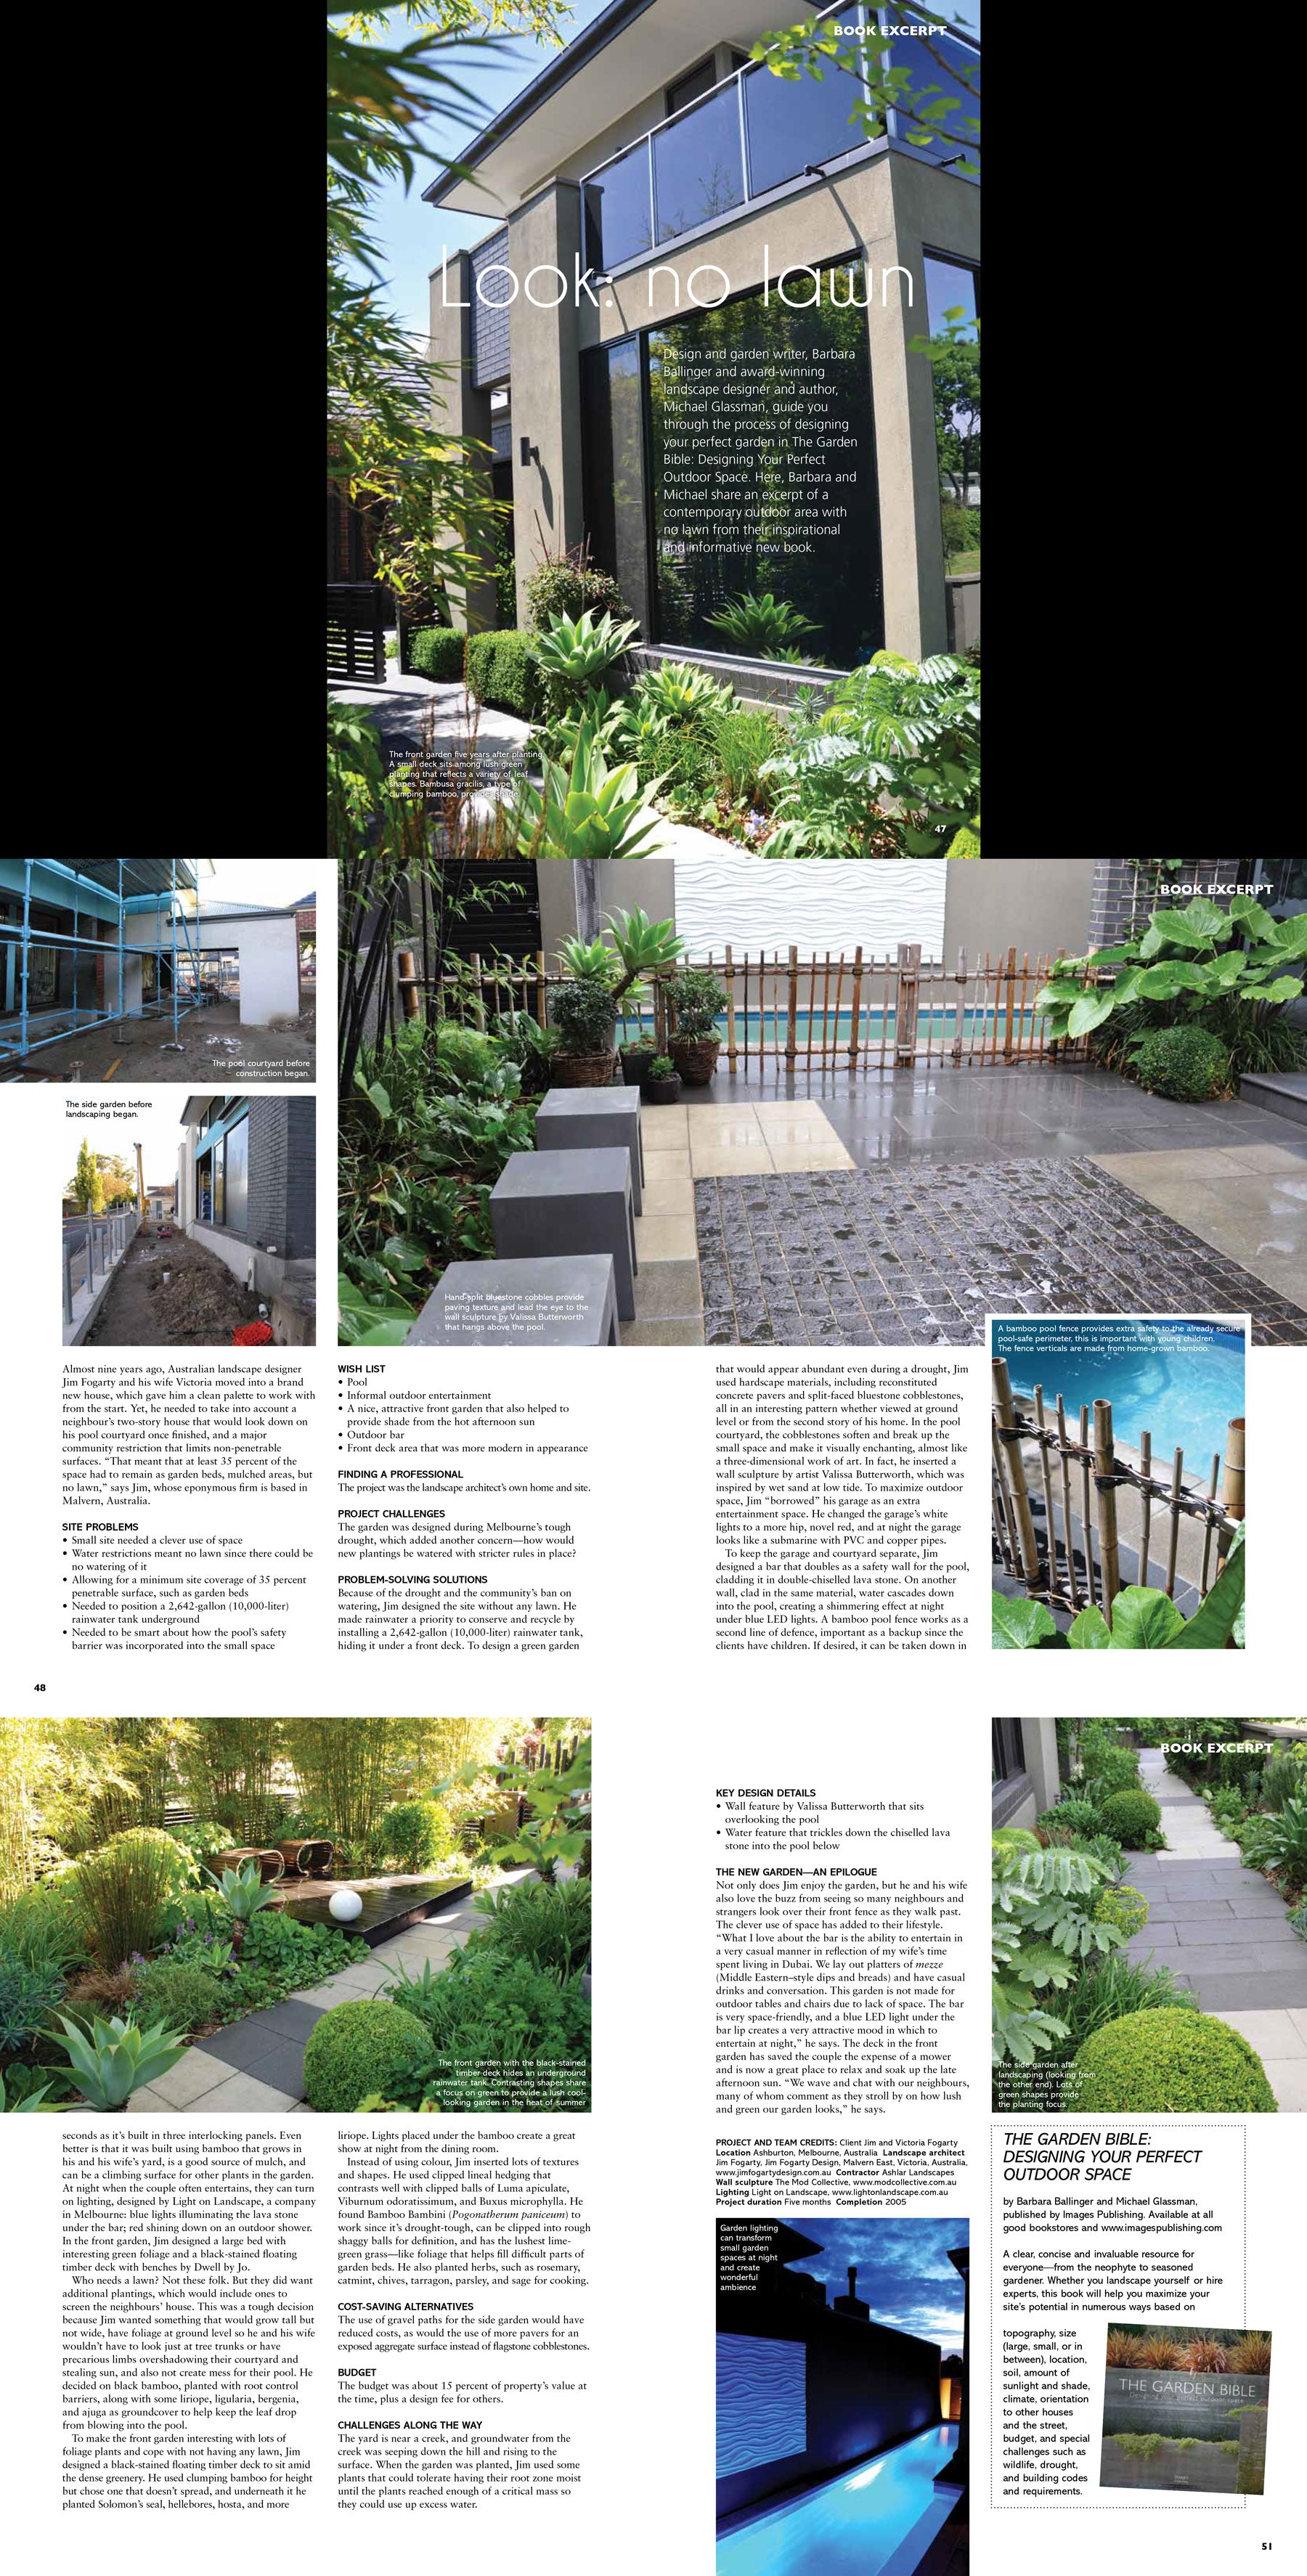 Design Your Garden Garden ideas and garden design